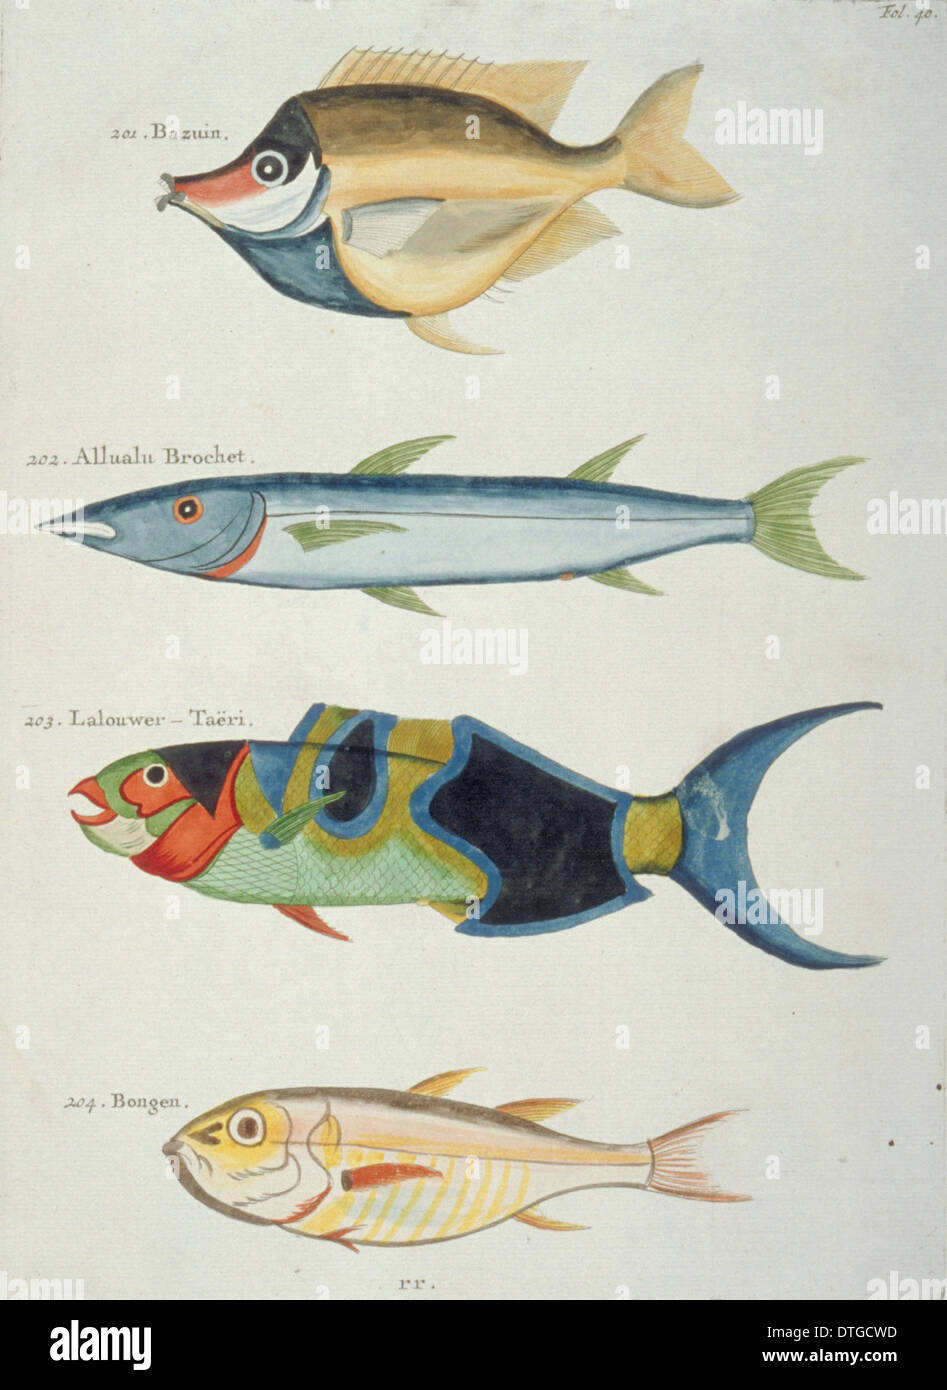 Colourful illustration of four fish - Stock Image